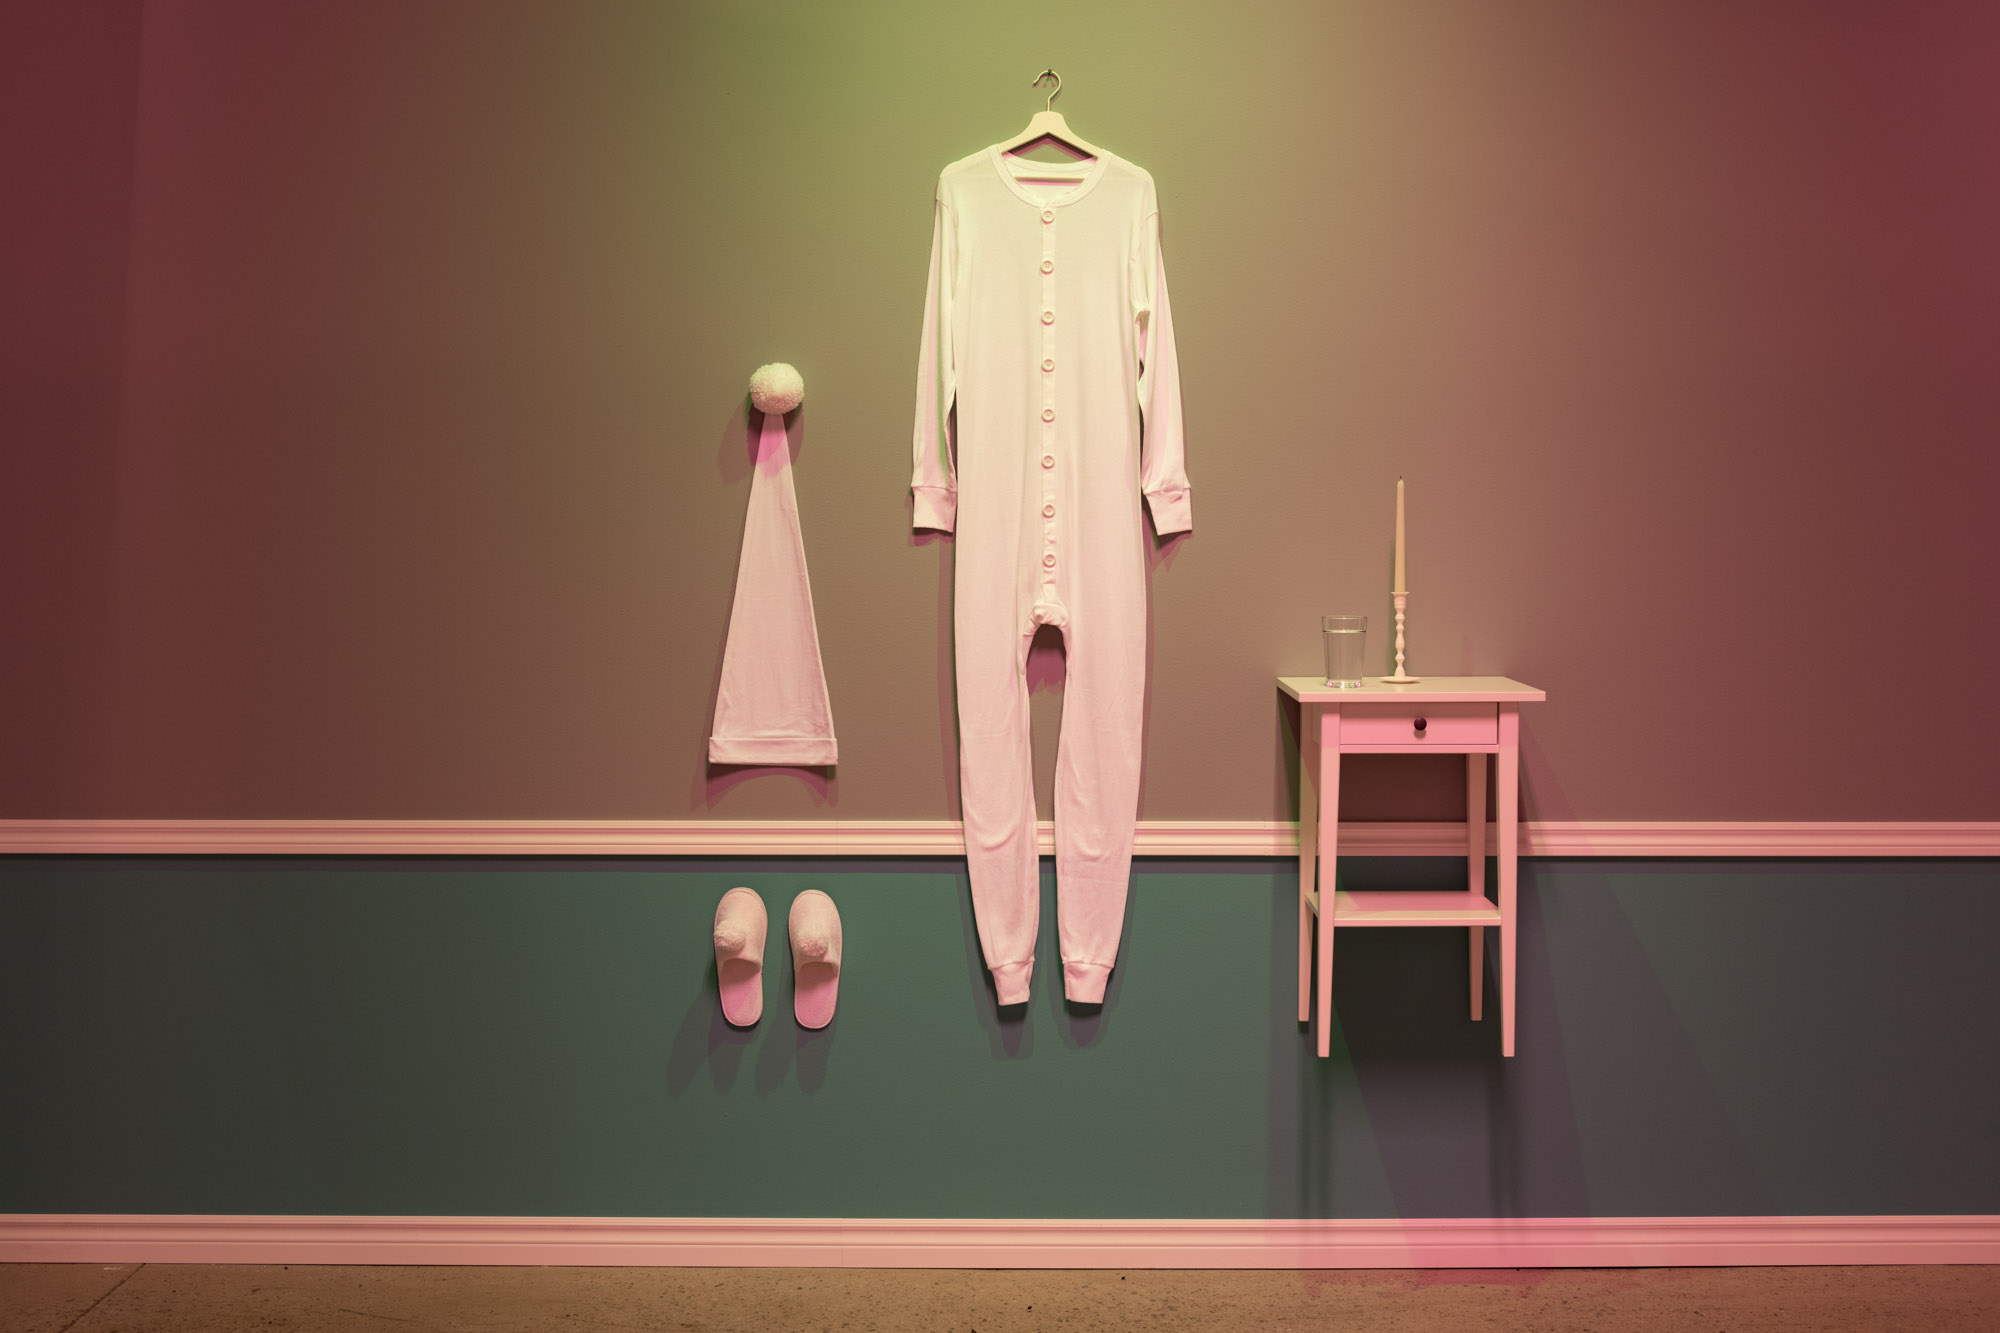 "Ritual , 2019, Union suit, sleeping cap, slippers, night stand, glass of water, burning candle, hanger, molding, acrylic, nail, 88"" x 64"" x 14"""